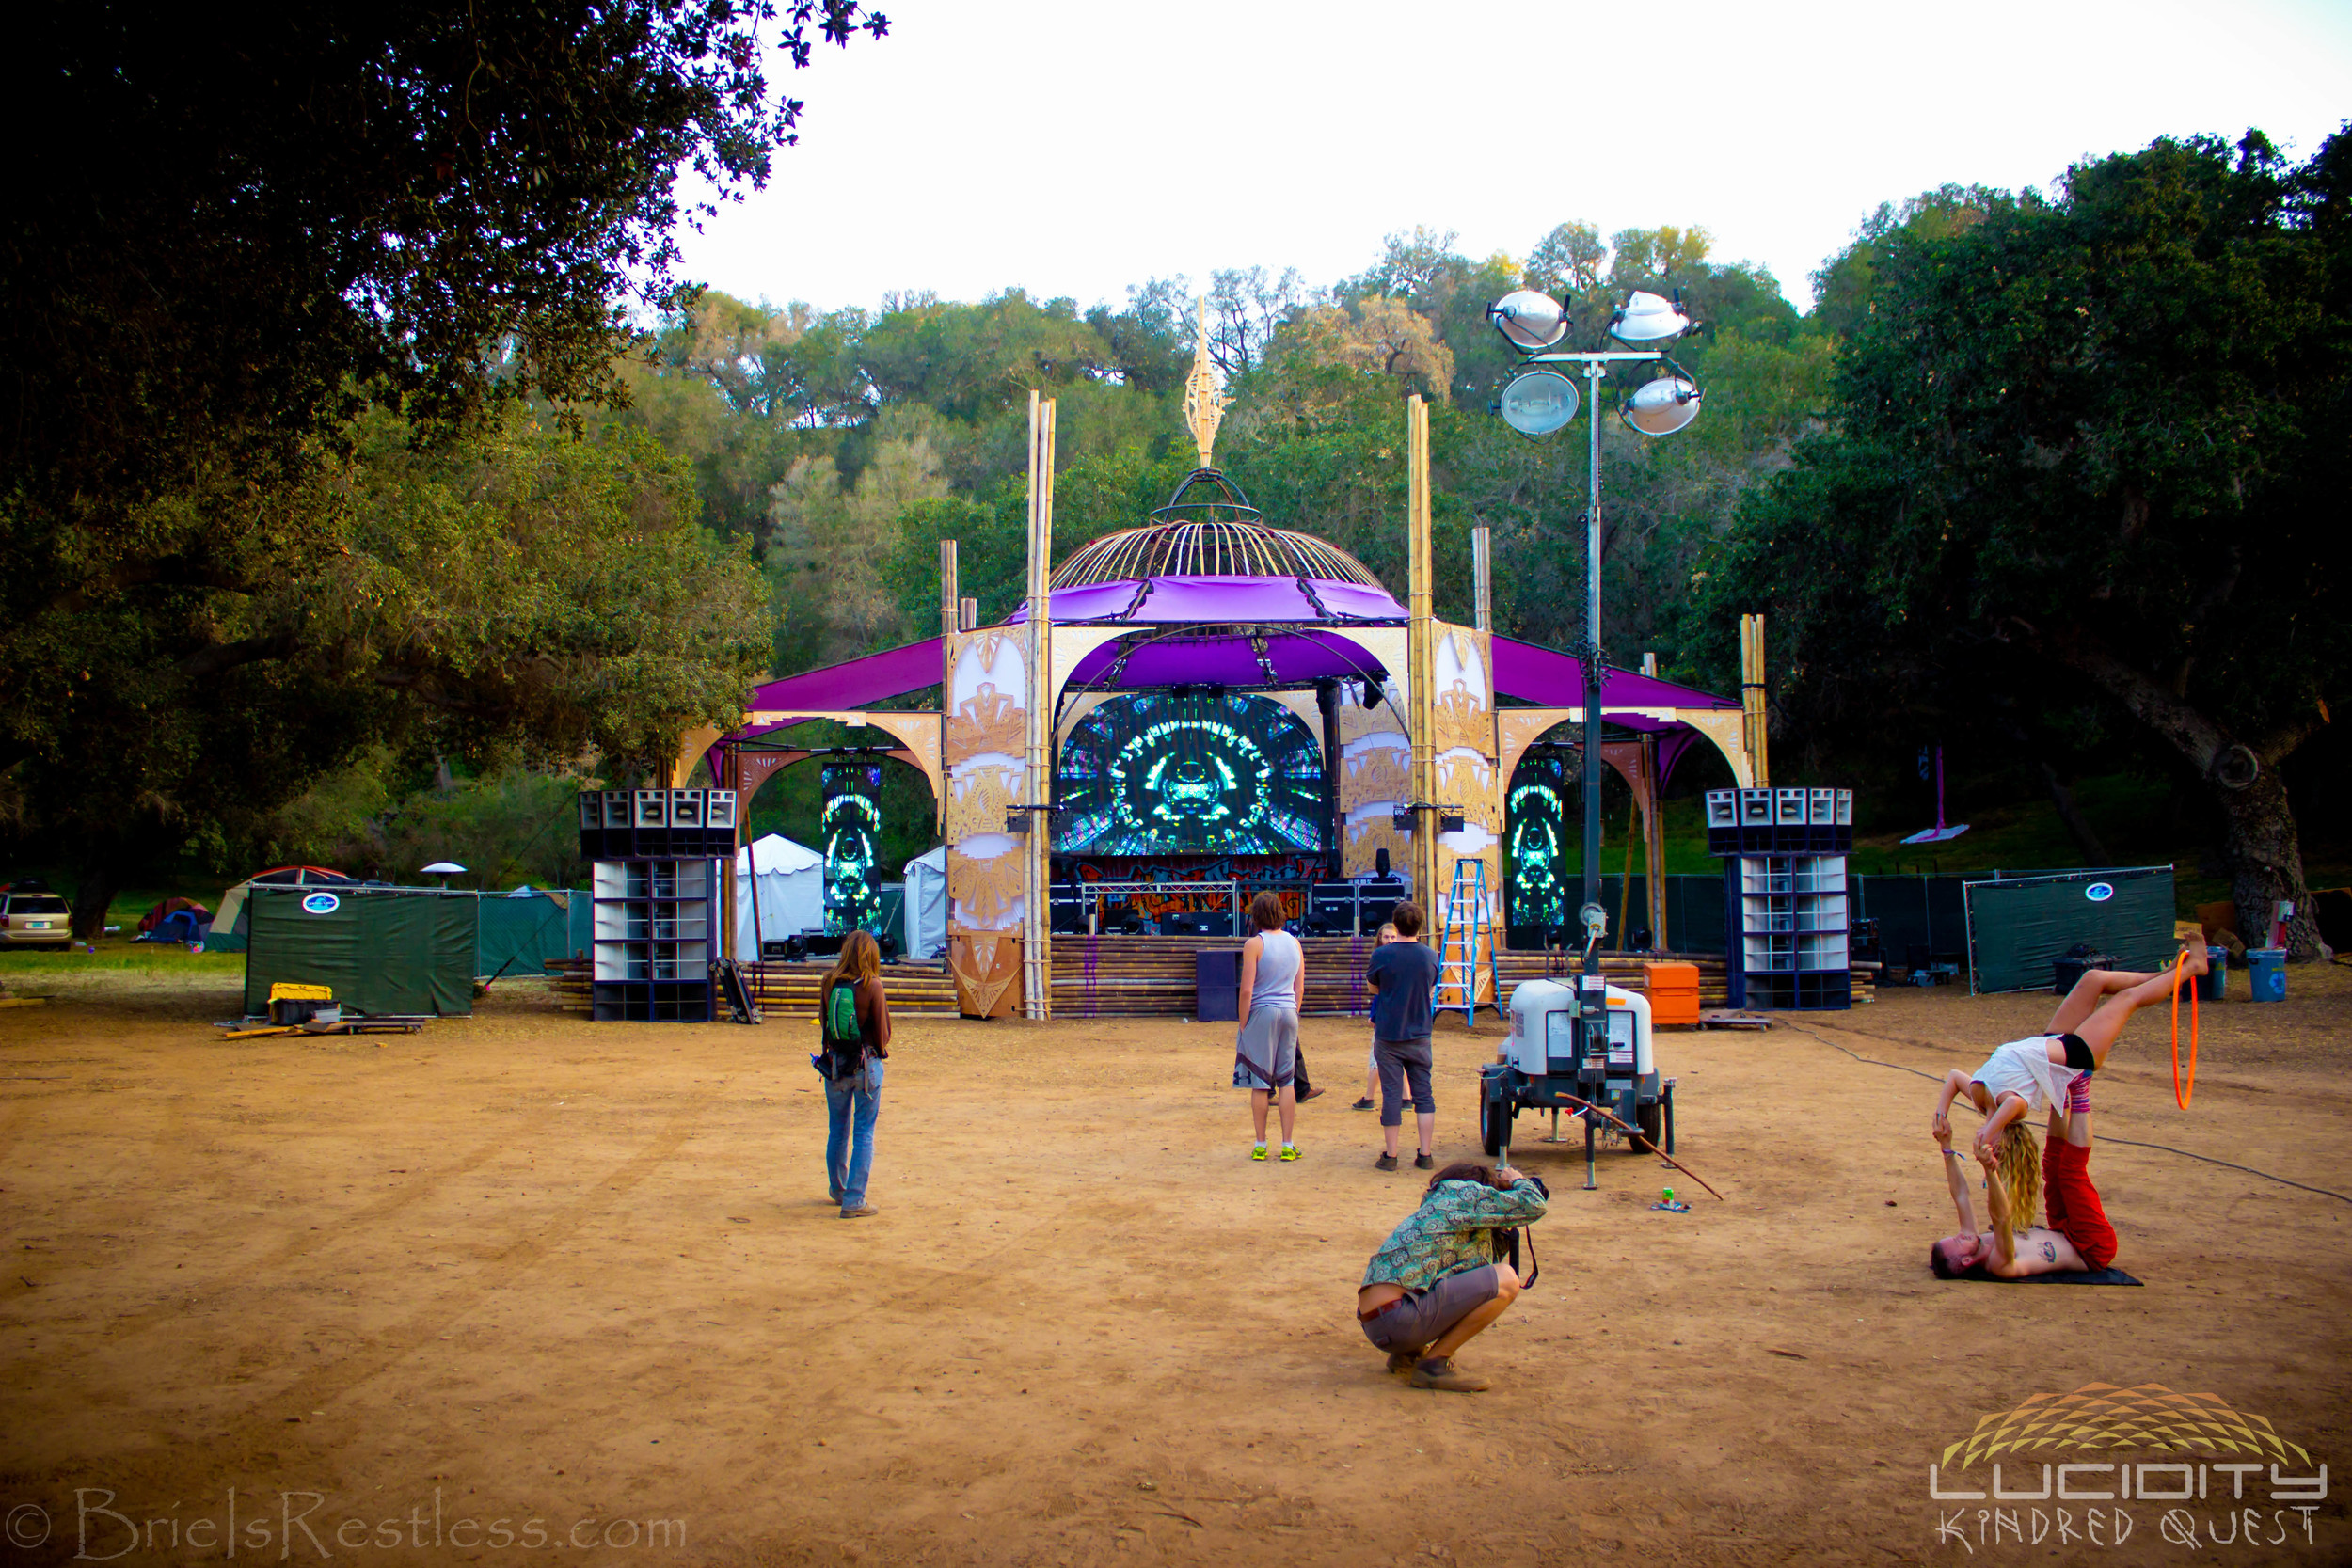 Lucid Stage - Main Stage - Outdoors - Dancing - EDM - Luciditiy - Kindred Quest - Build - April 2015 (1 of 1)-1.jpg